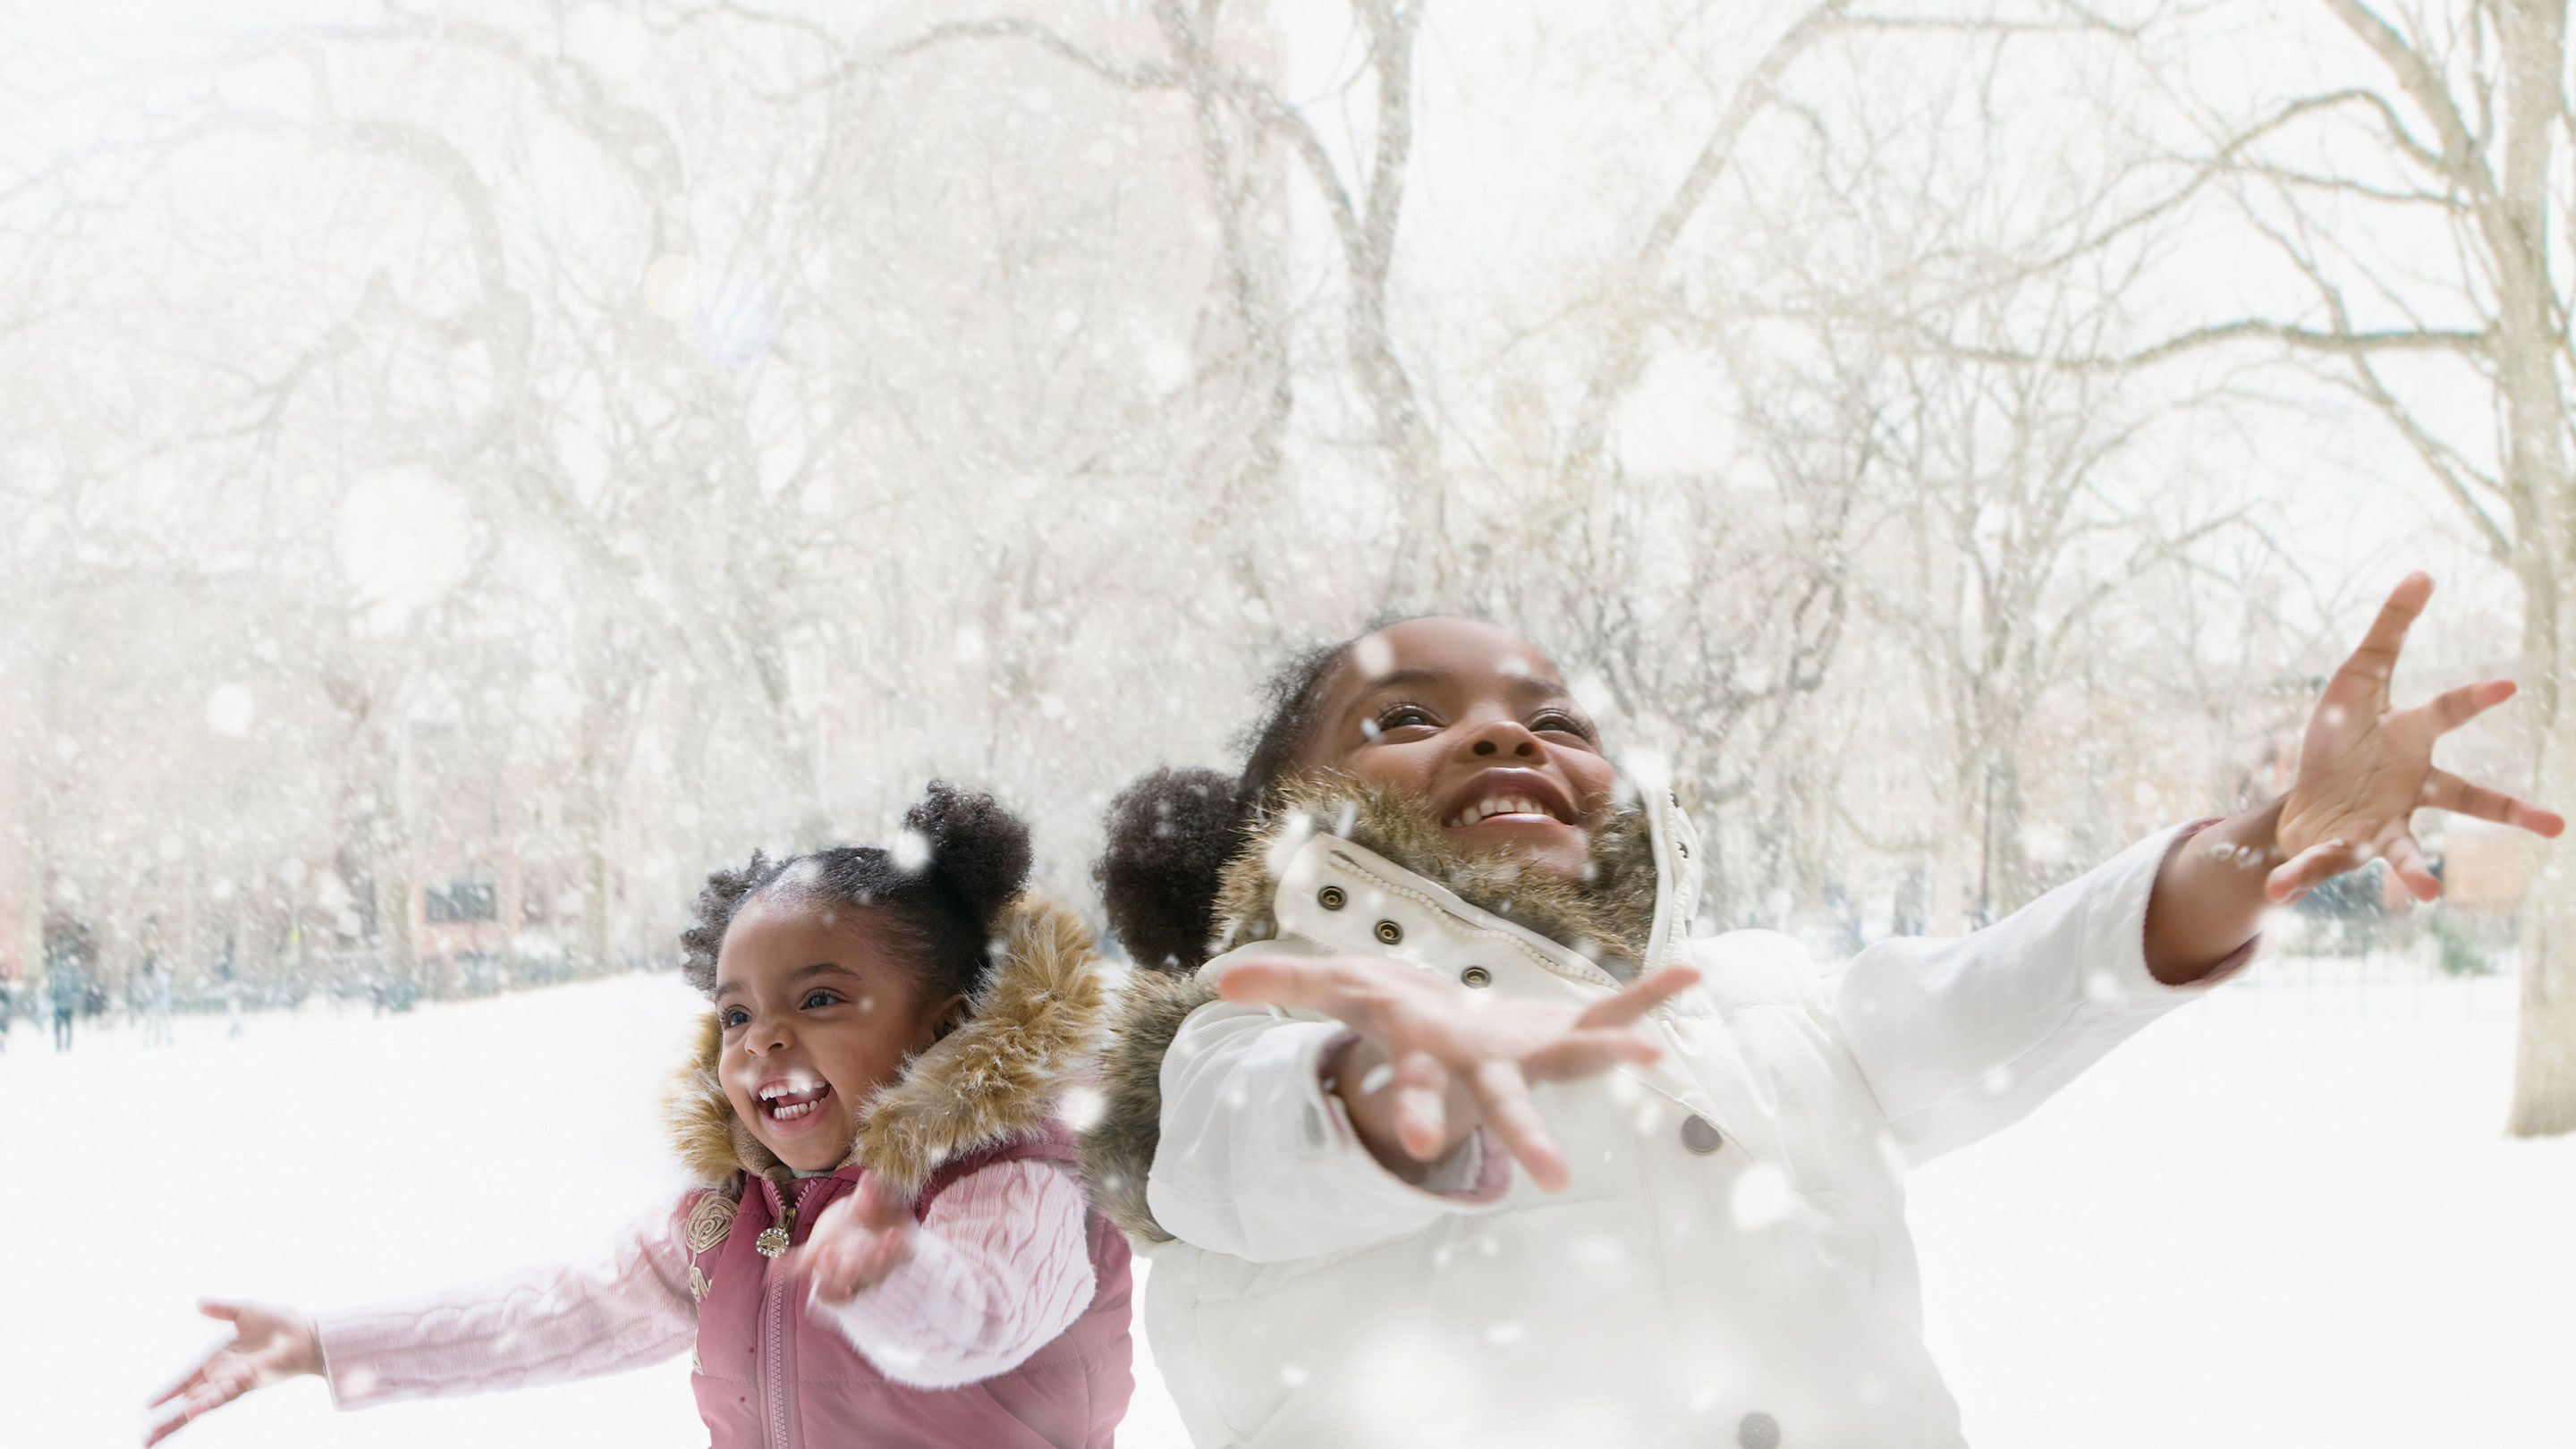 photograph of two students playing in the snow